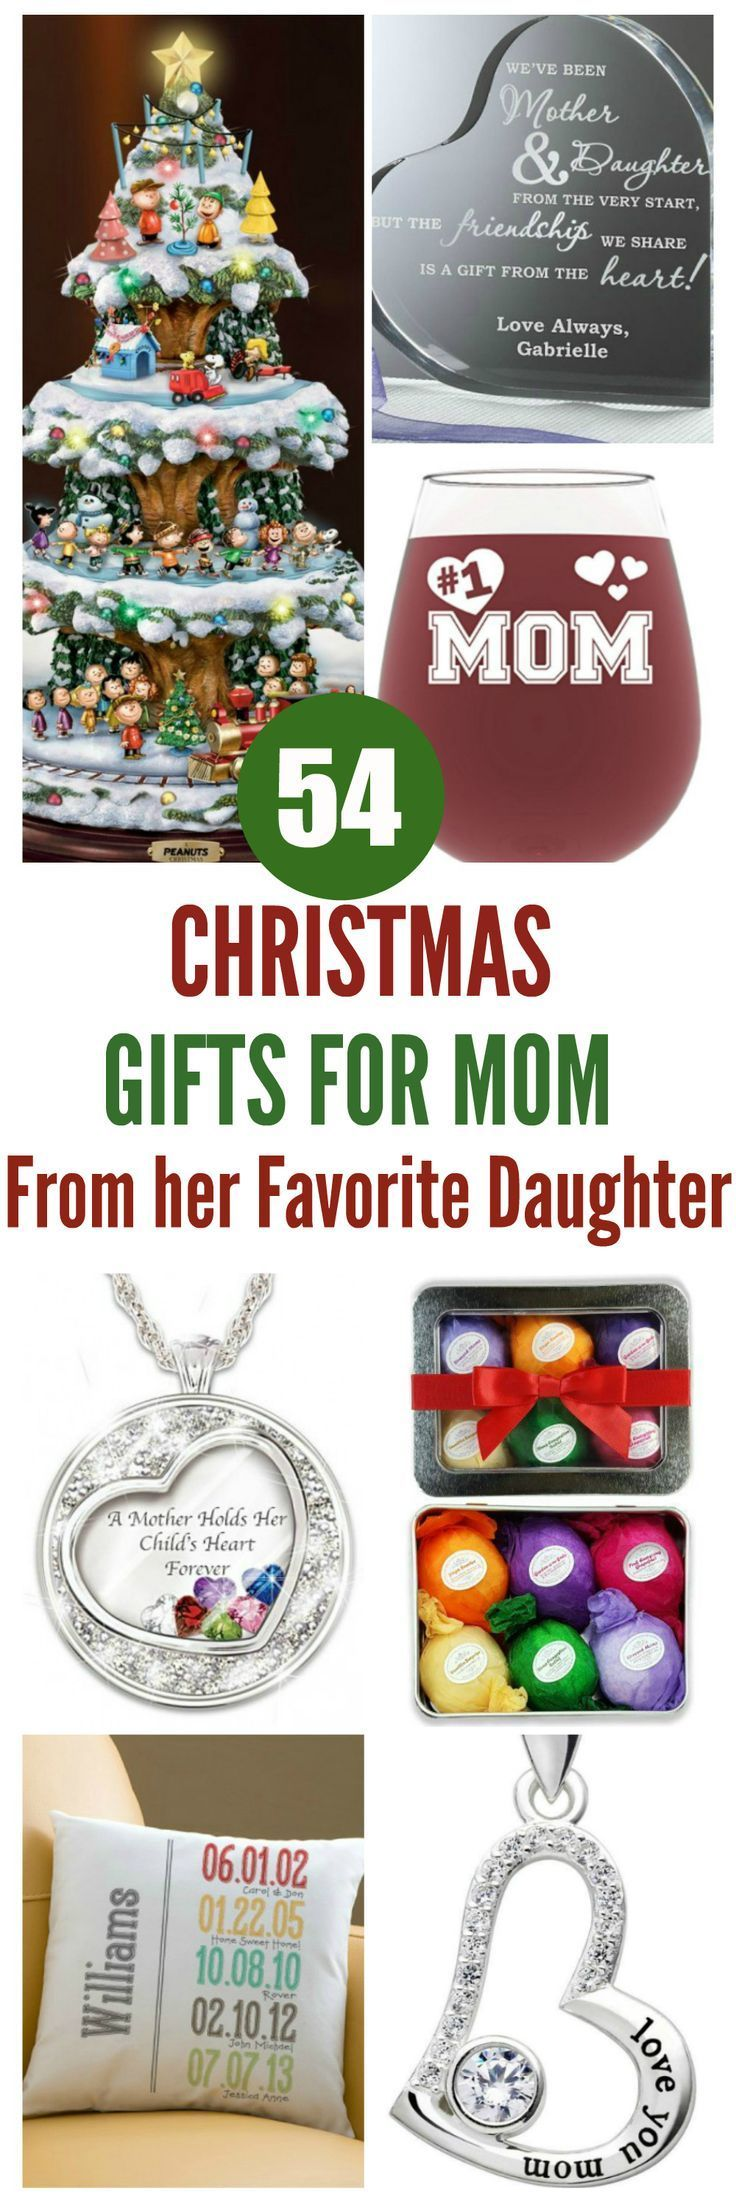 Gifts for Mom from Her Daughter - Top 60 Gifts | Christmas Gifts for ...